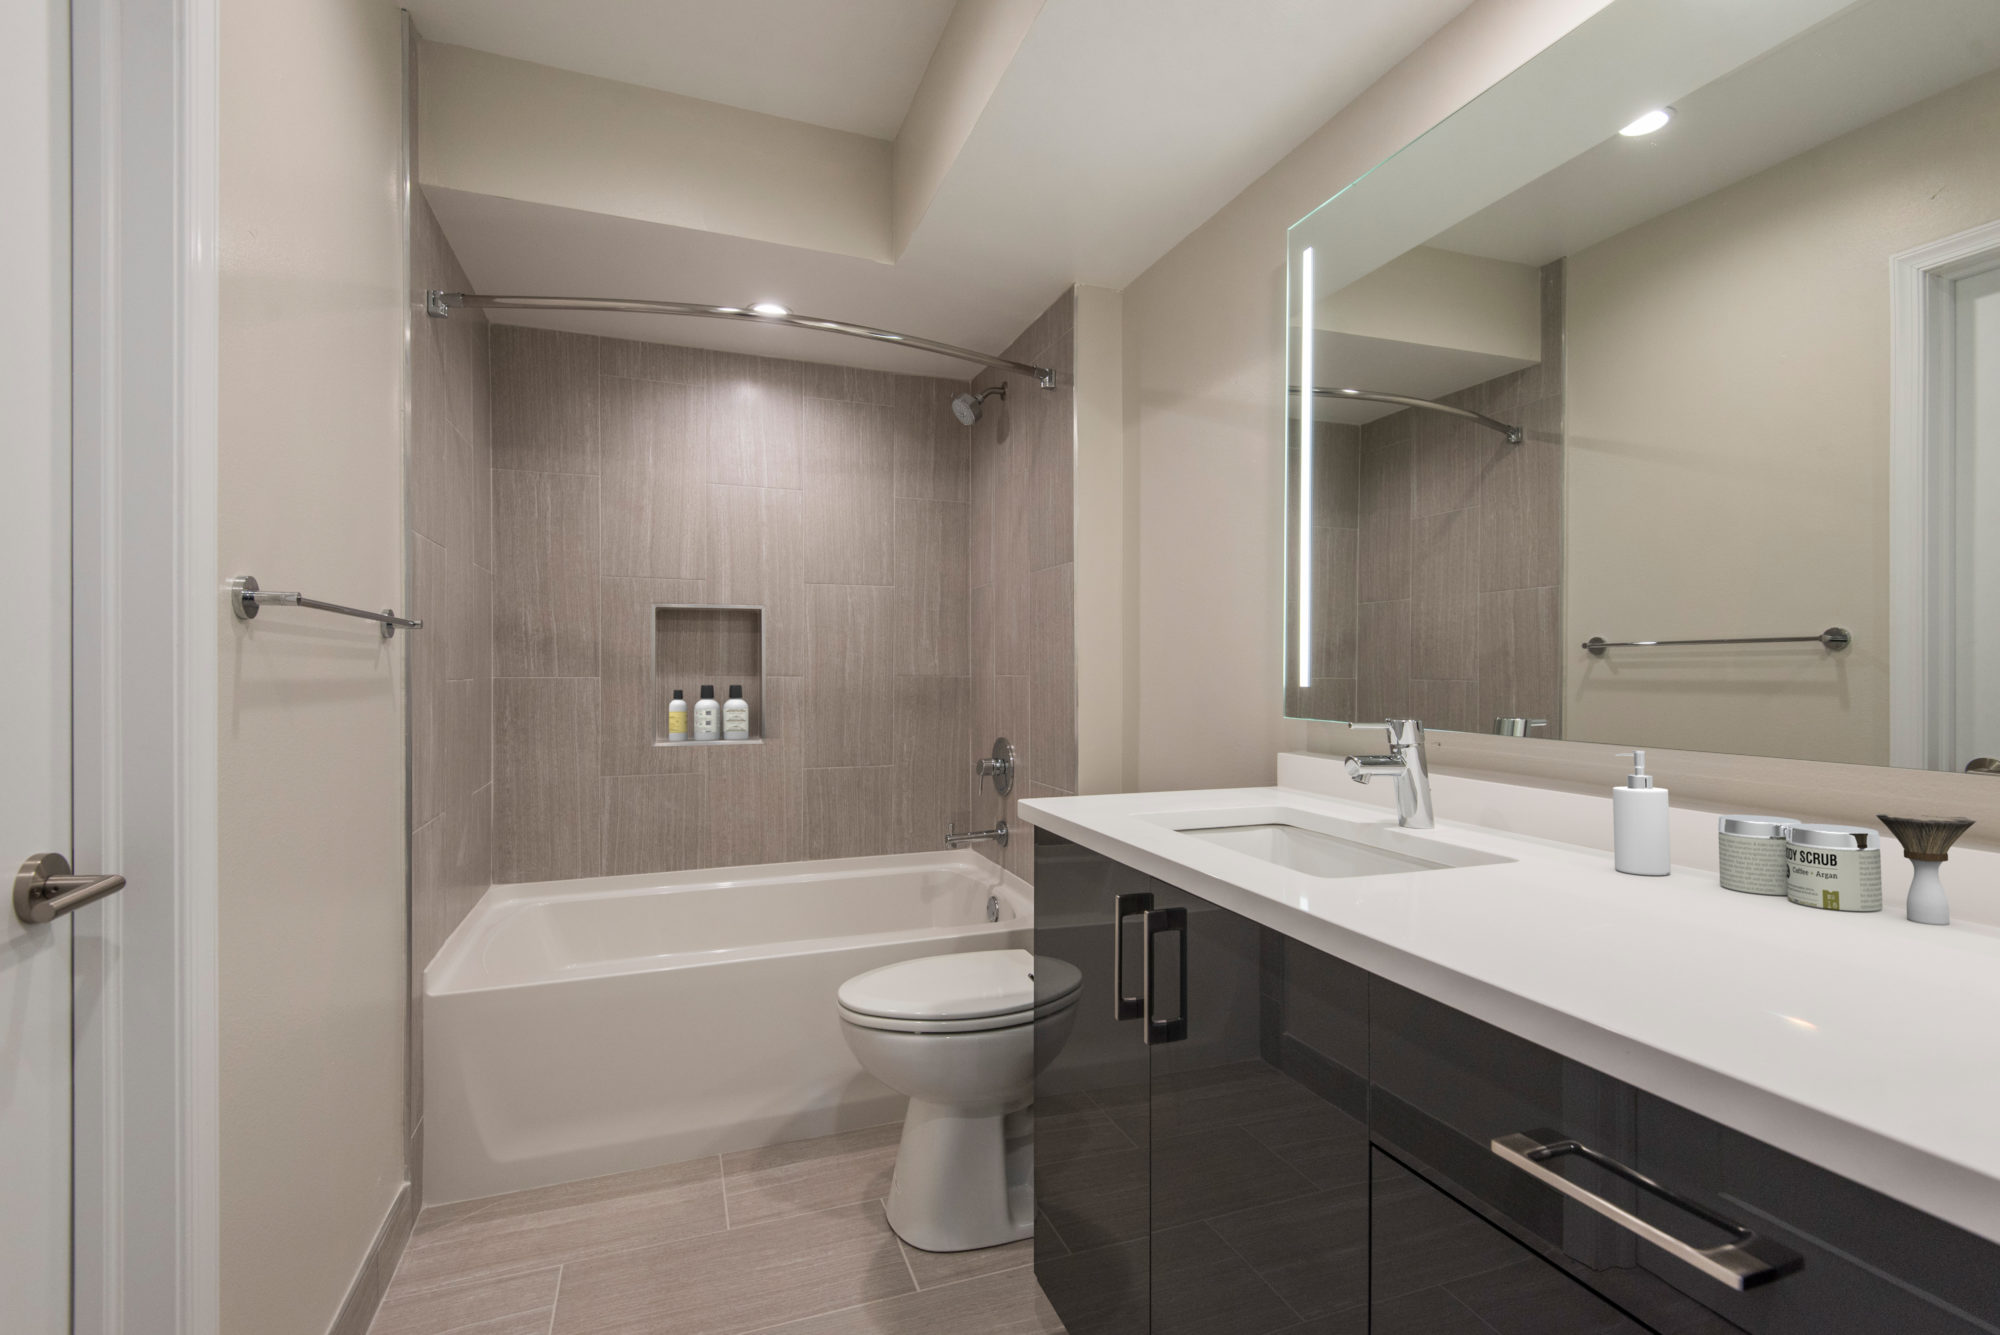 large apartment bathroom with double vanity